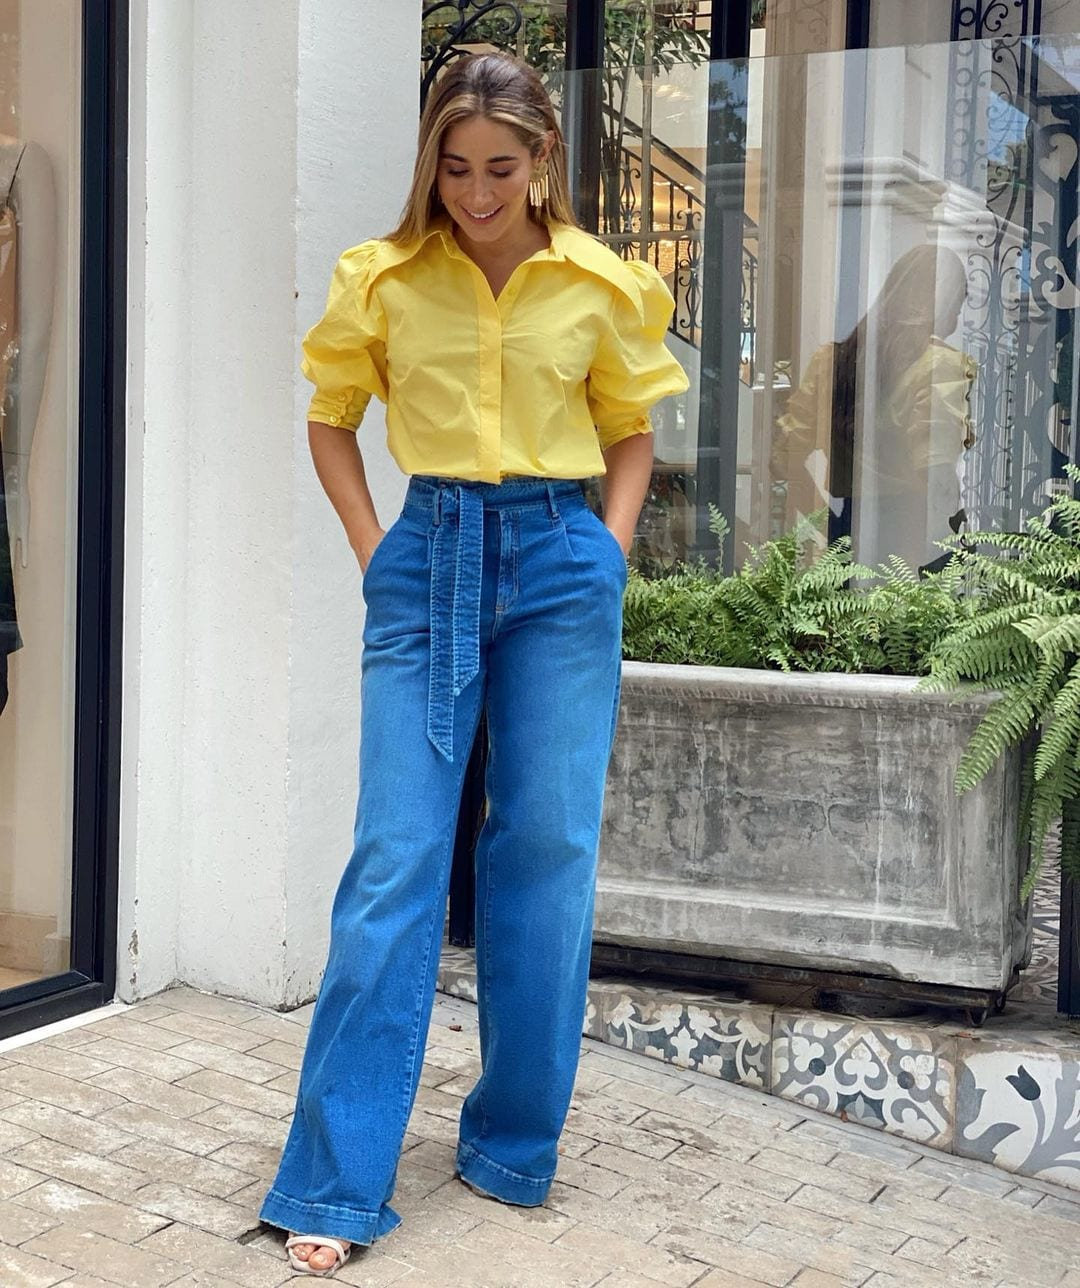 Pastel yellow outfit ideas